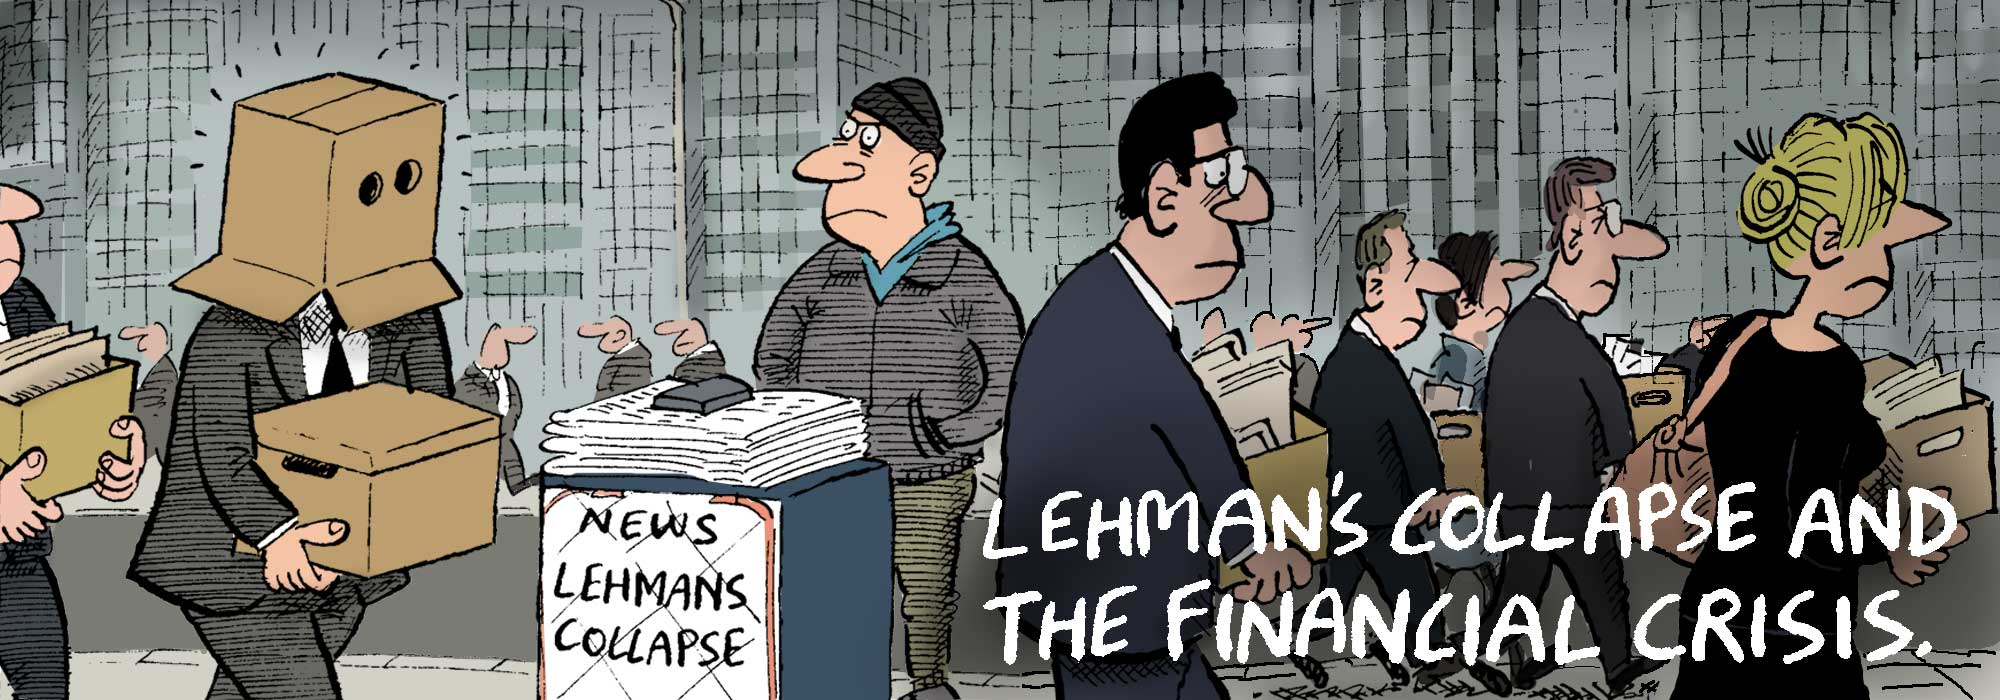 Lehmans Collapse and Financial Crisis